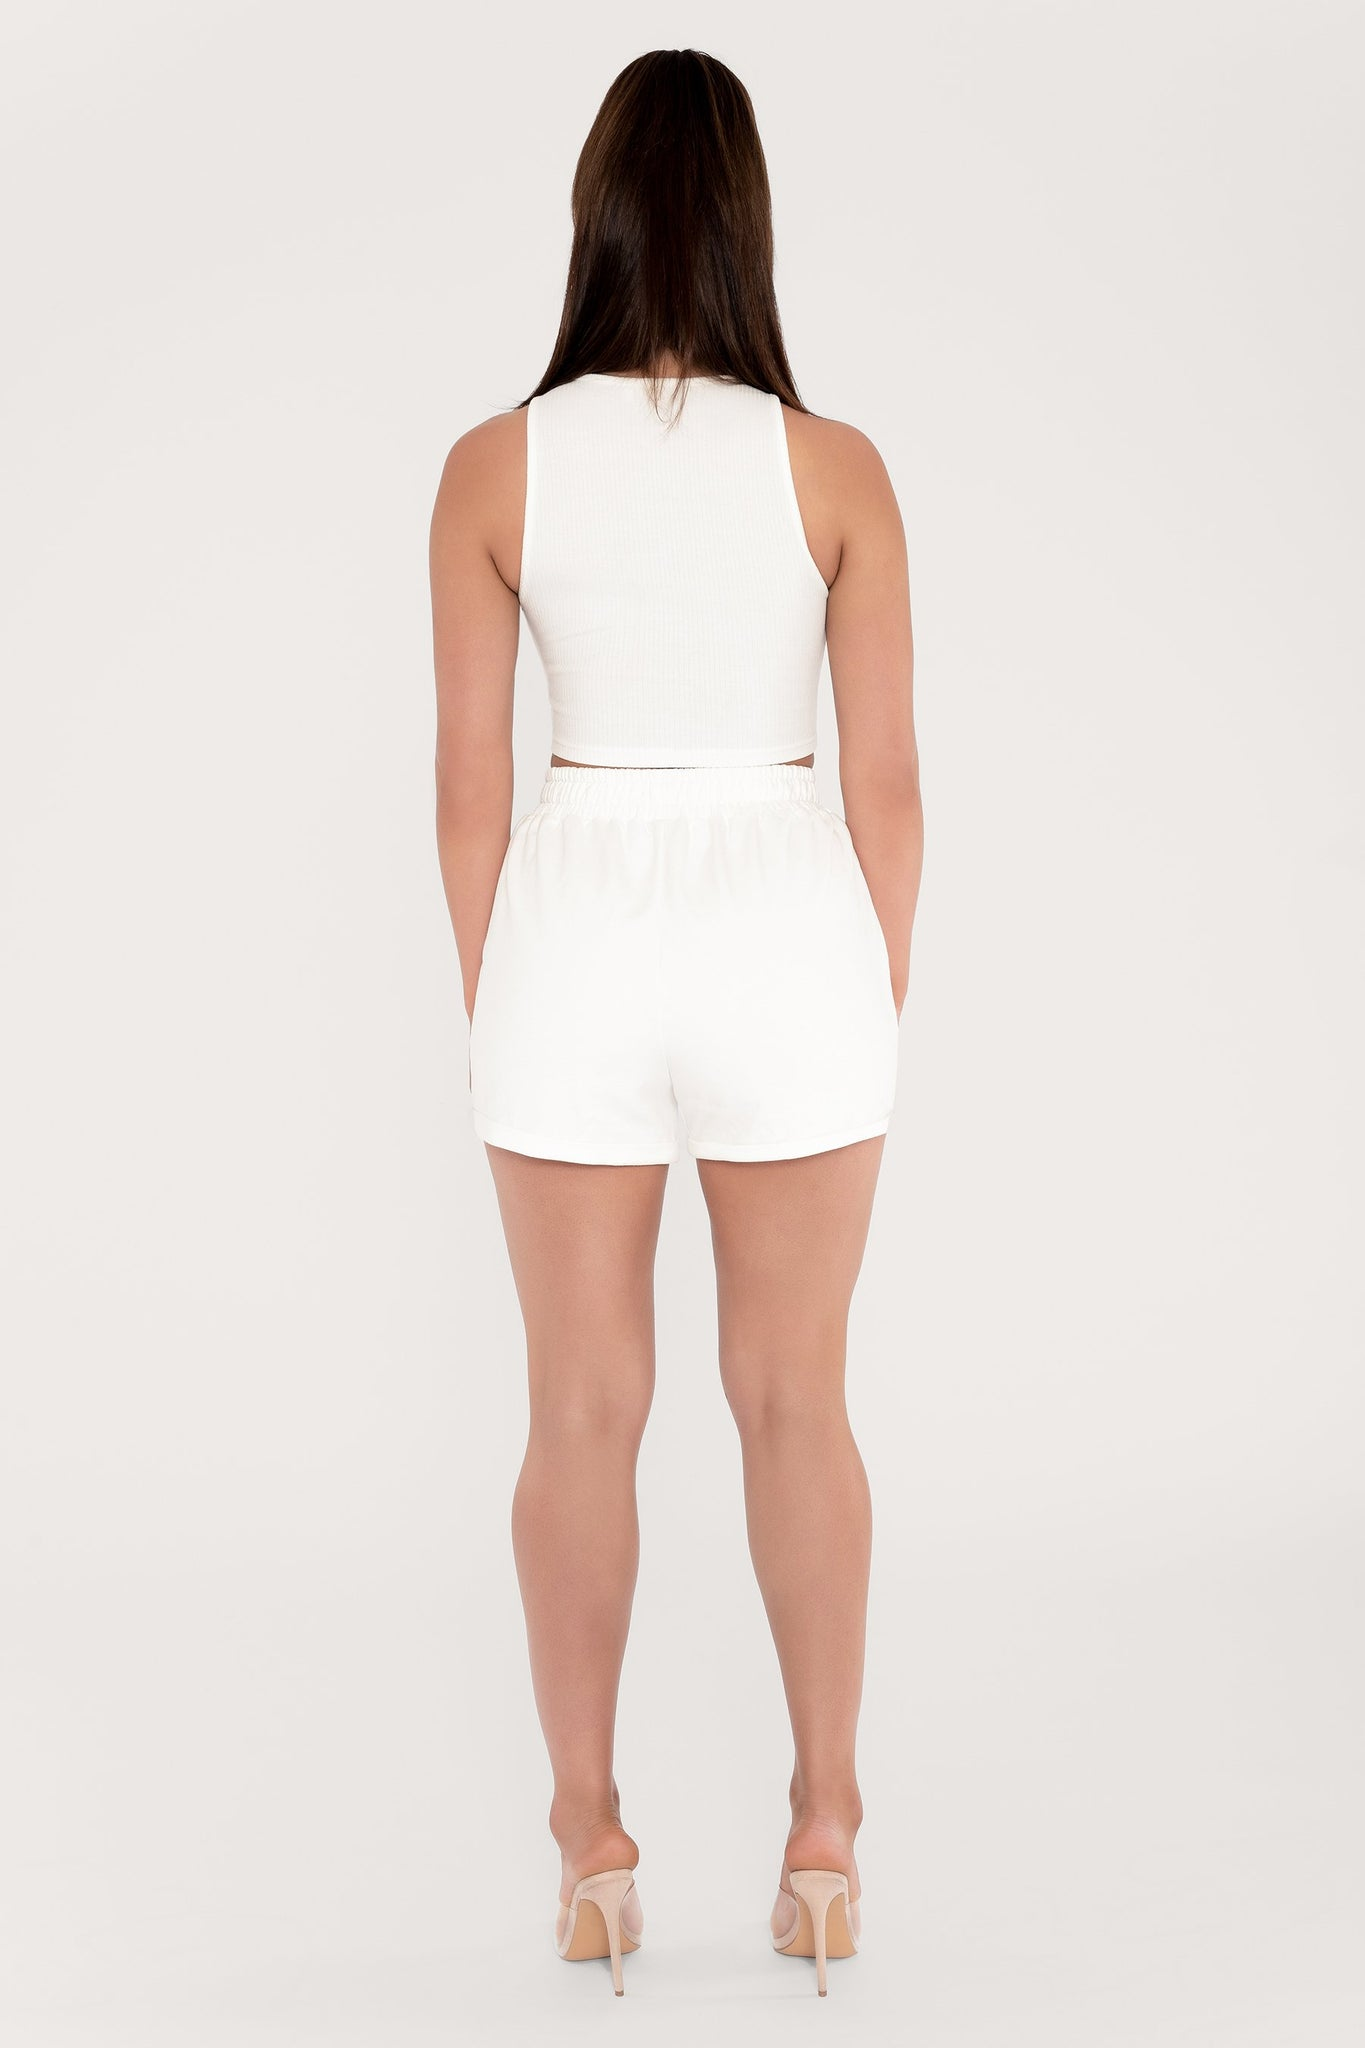 Tahlia Loopback Shorts - White - MESHKI